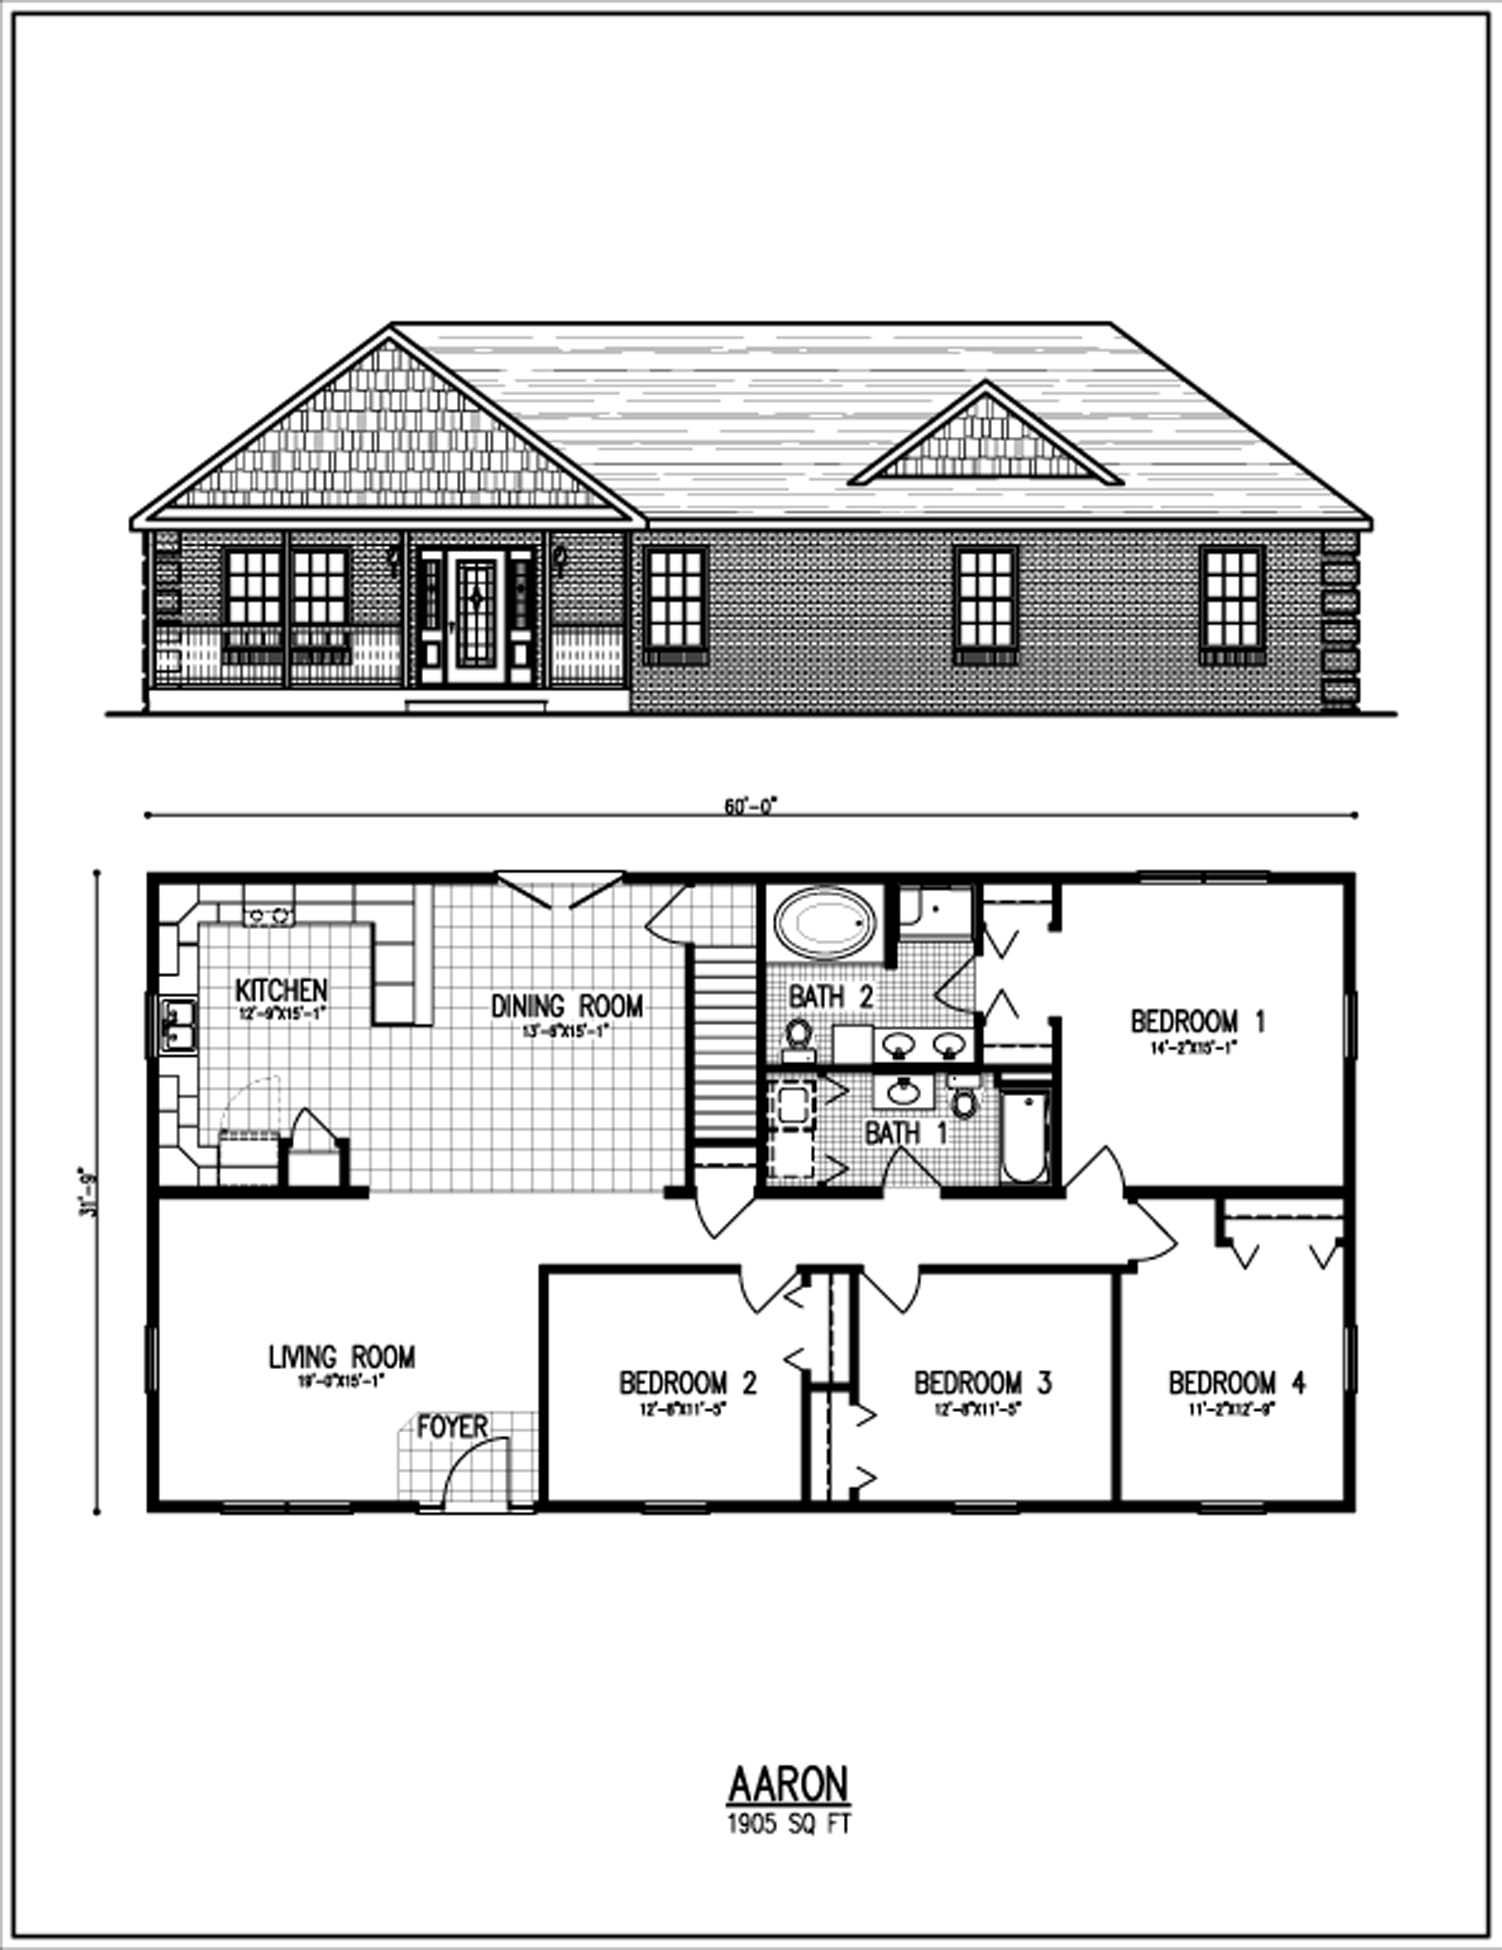 All american homes floorplan center staffordcape for Top house plan websites